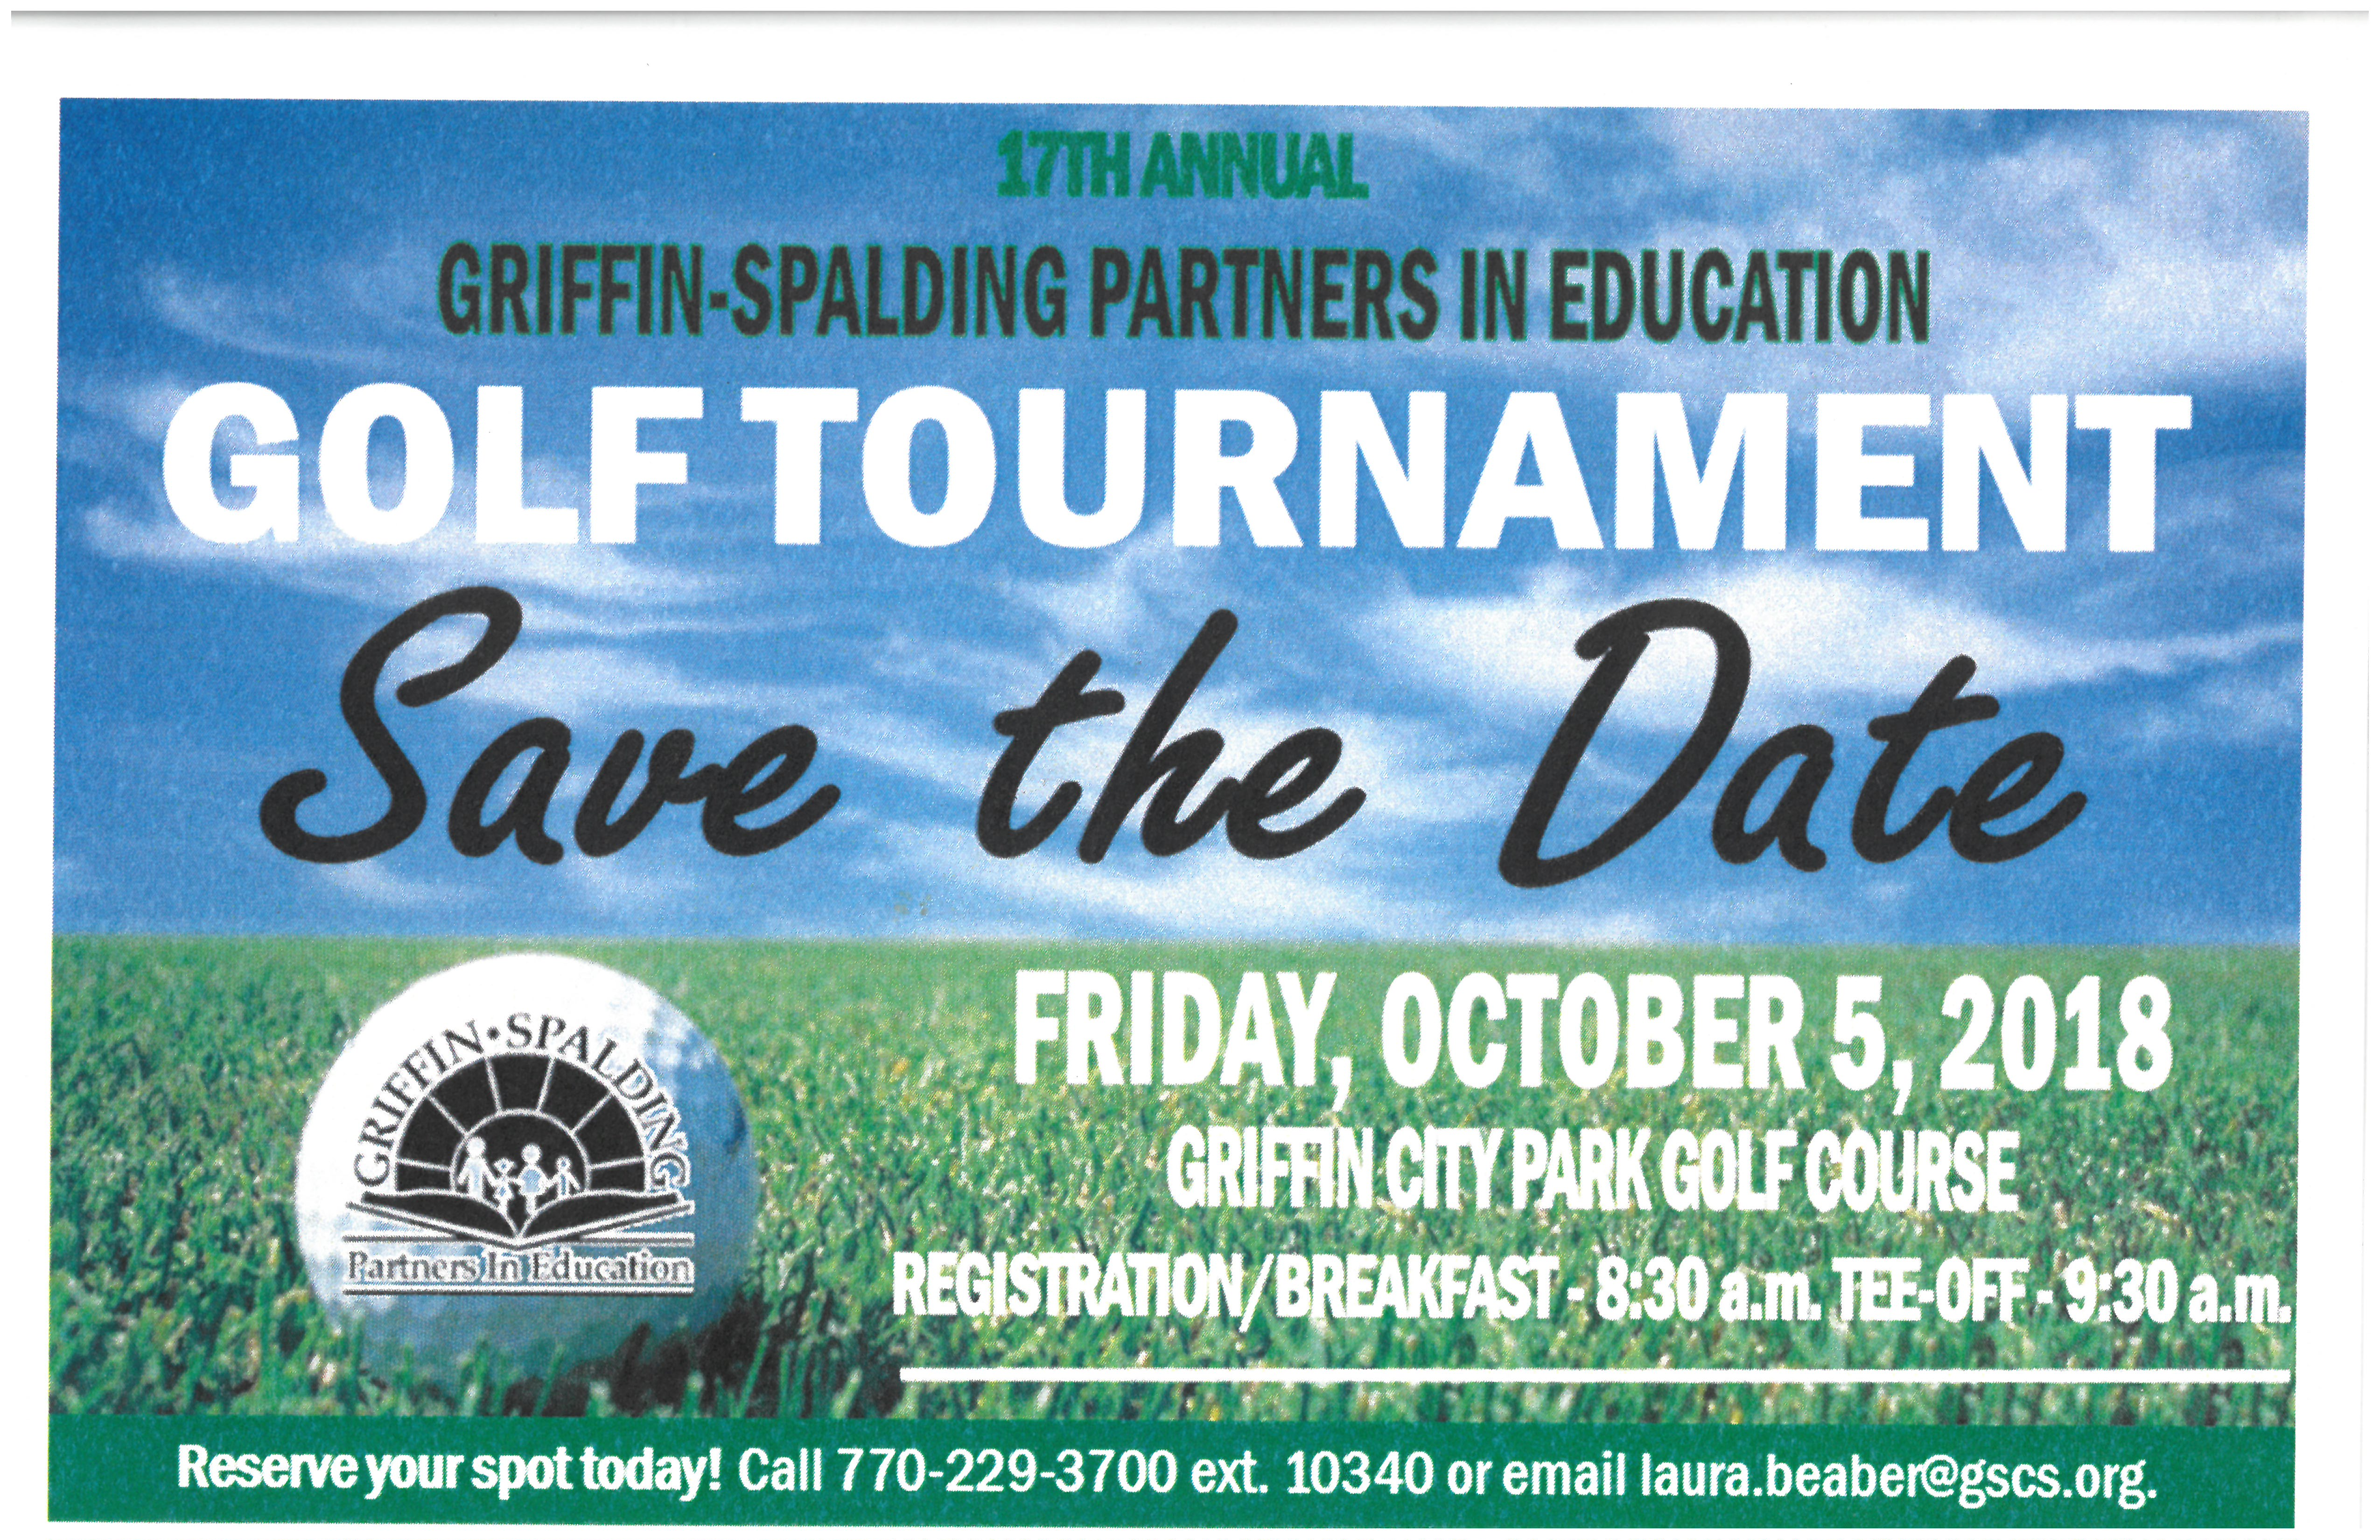 Griffin-Spalding Partners in Education Golf Tournament